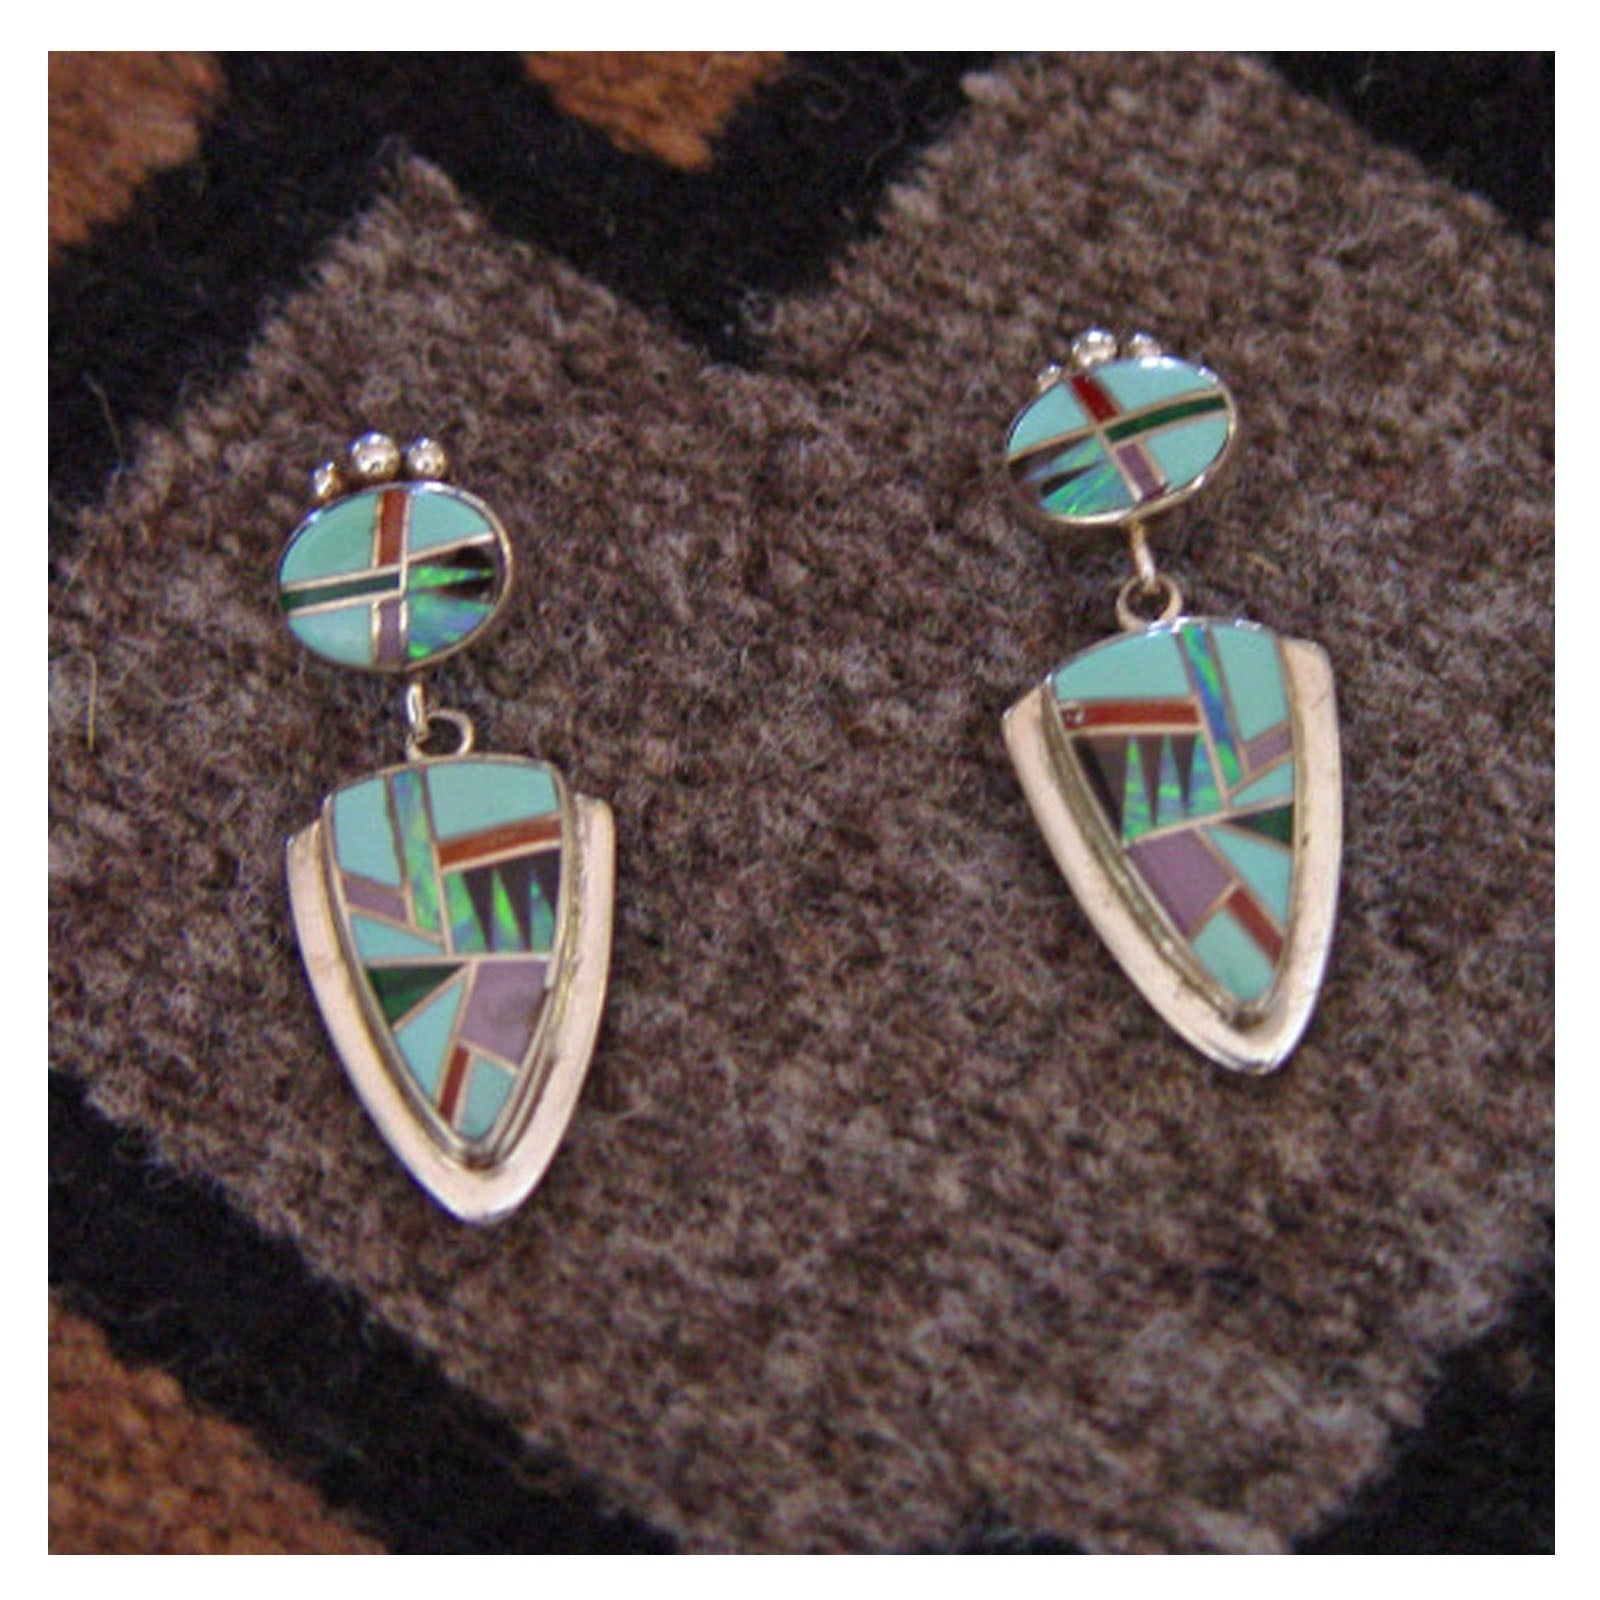 Sold Jewelry : Turquoise And Opal Inlay Earrings : Naj6e  Getzwiller's  Nizhoni Ranch